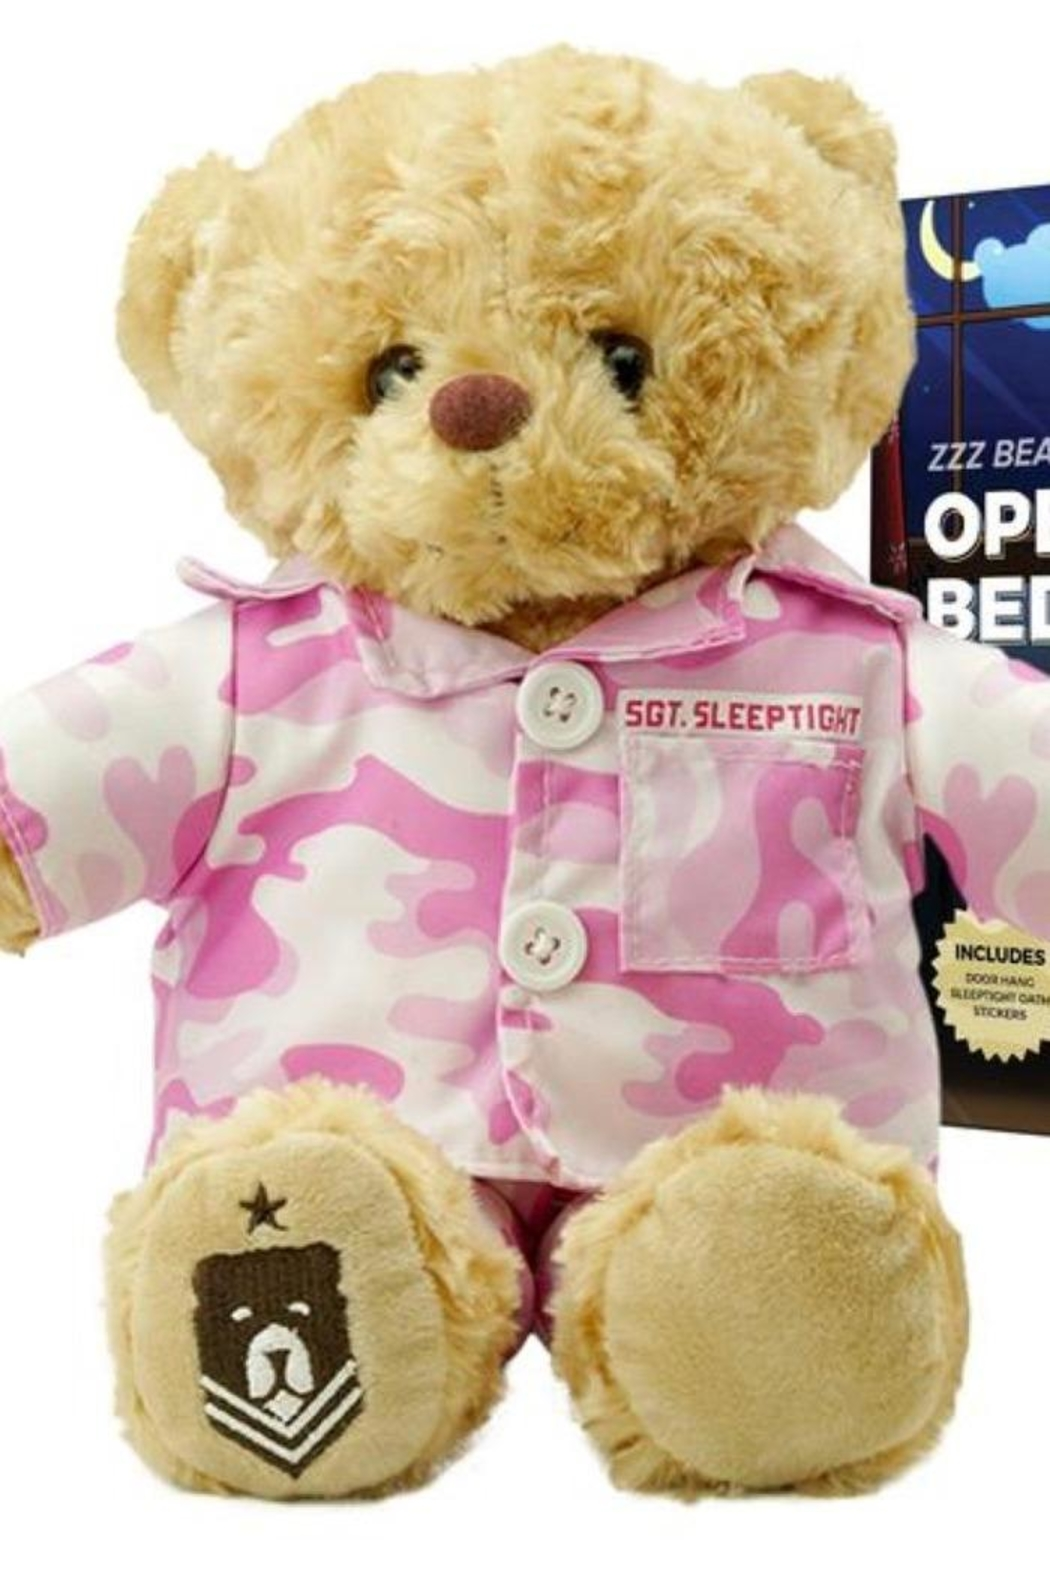 ZZZ Bears Sgt. Sleeptight Pink Camouflage Pjs With Sleep System And Storybook - Main Image